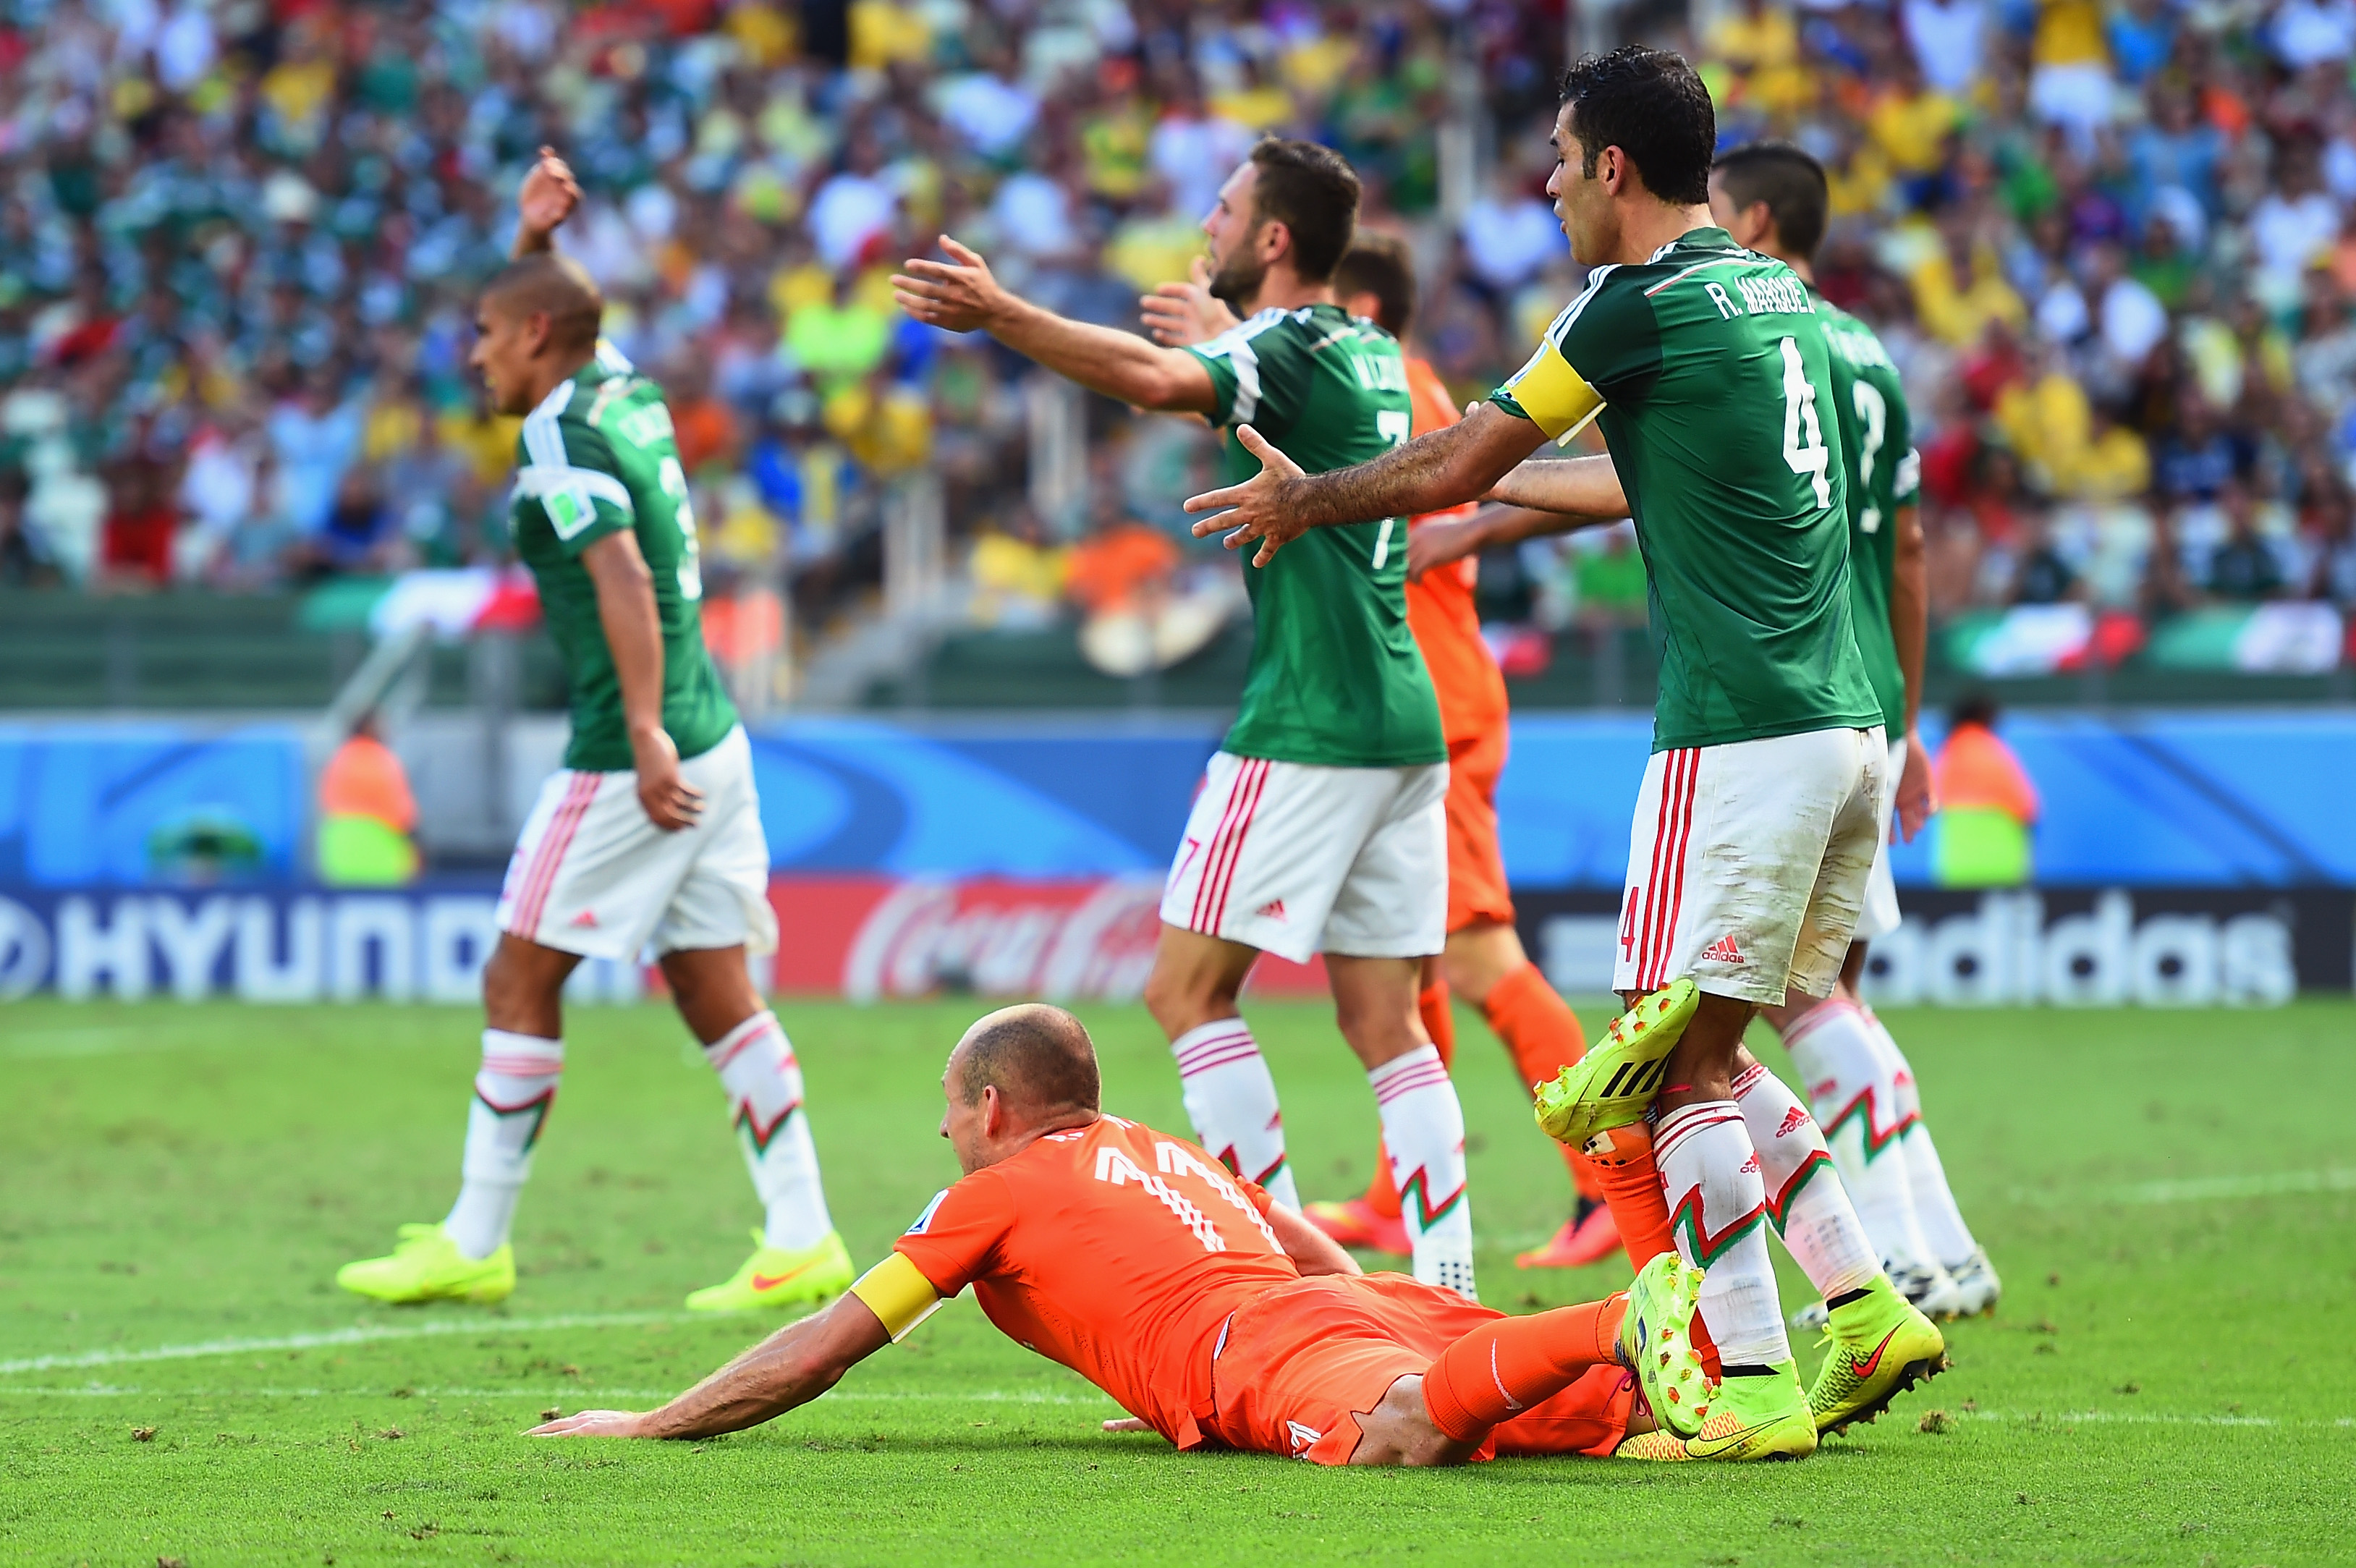 c169718dd Rafael Marquez of Mexico reacts after a challenge on Arjen Robben of the  Netherlands resulting in a yellow card for Marquez and a penalty kick for  the ...